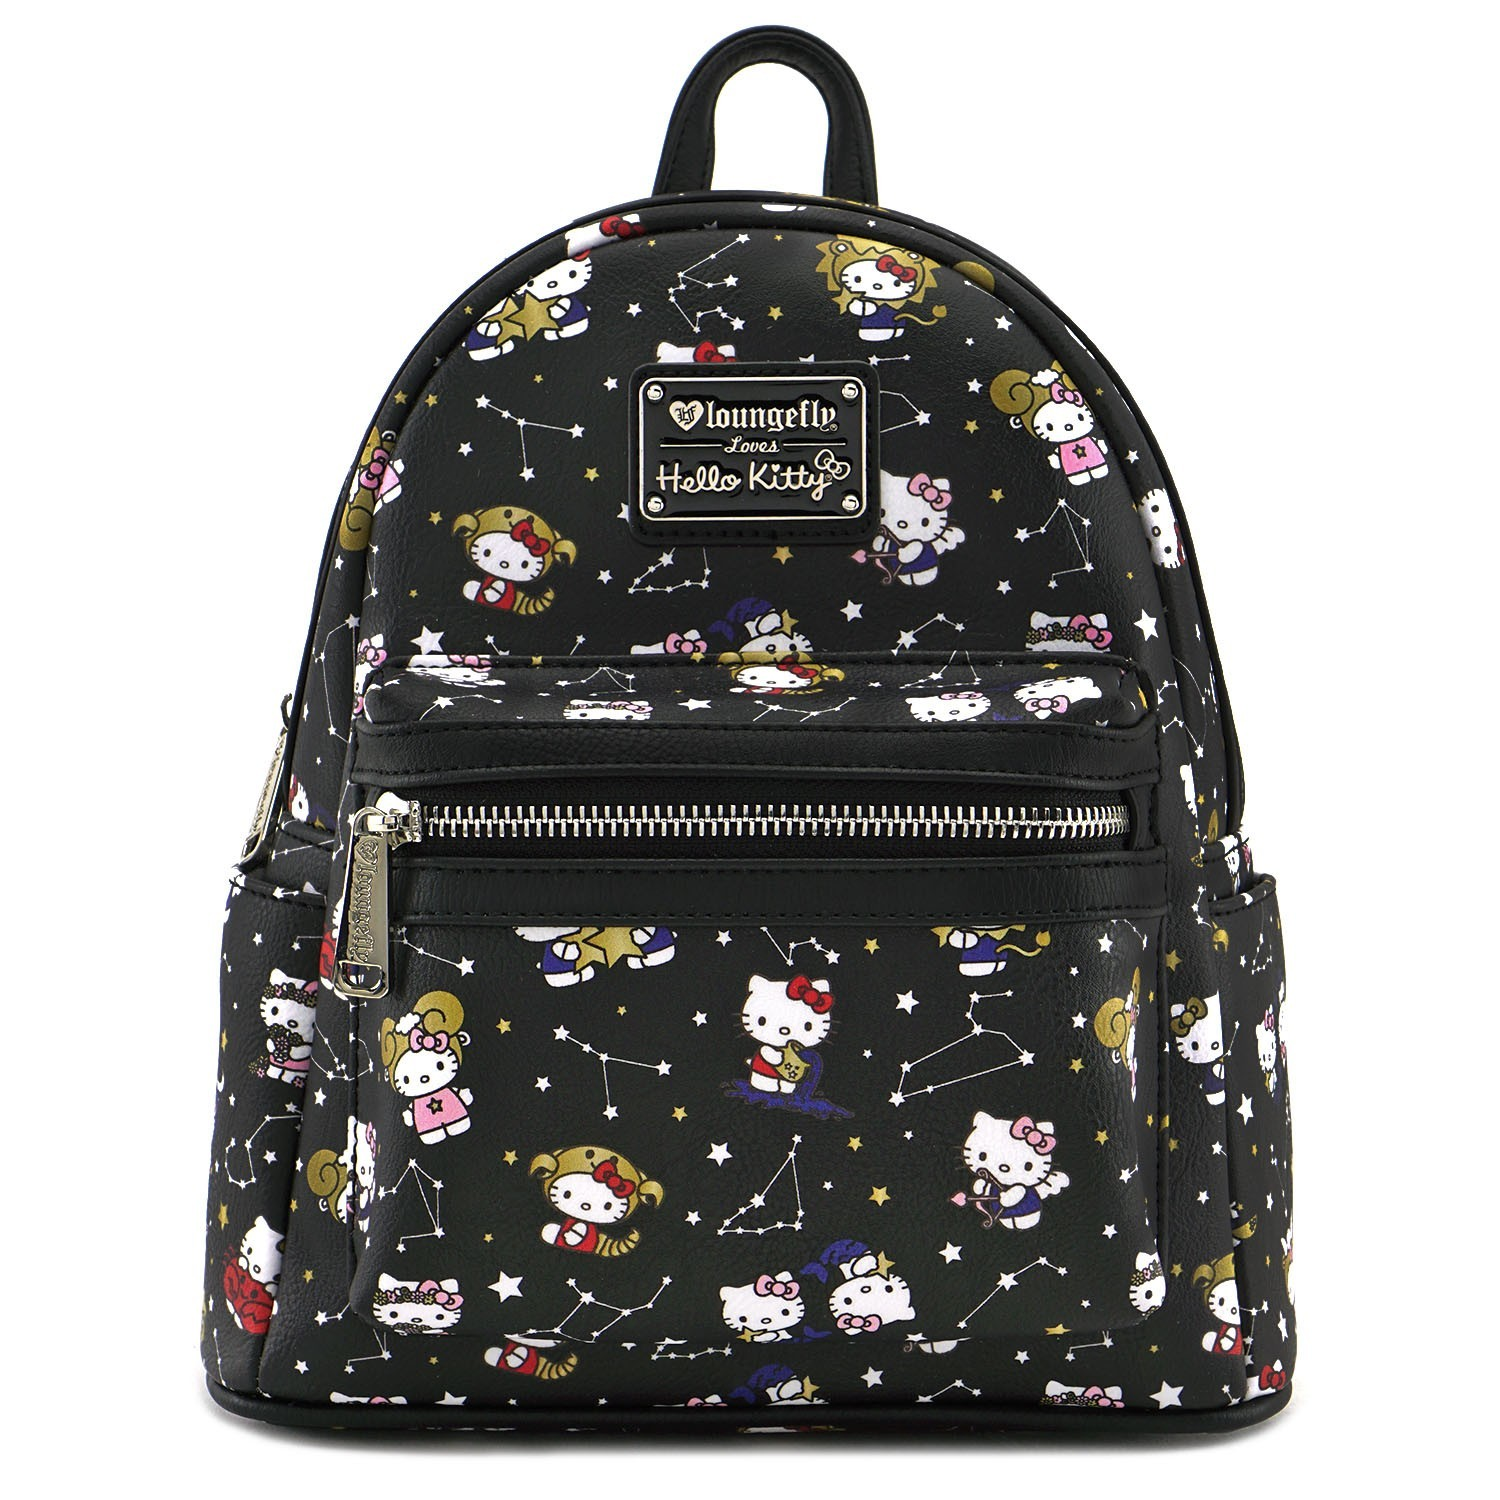 407f3143a Loungefly: Hello Kitty - Zodiac Mini Backpack | Women's | at Mighty ...